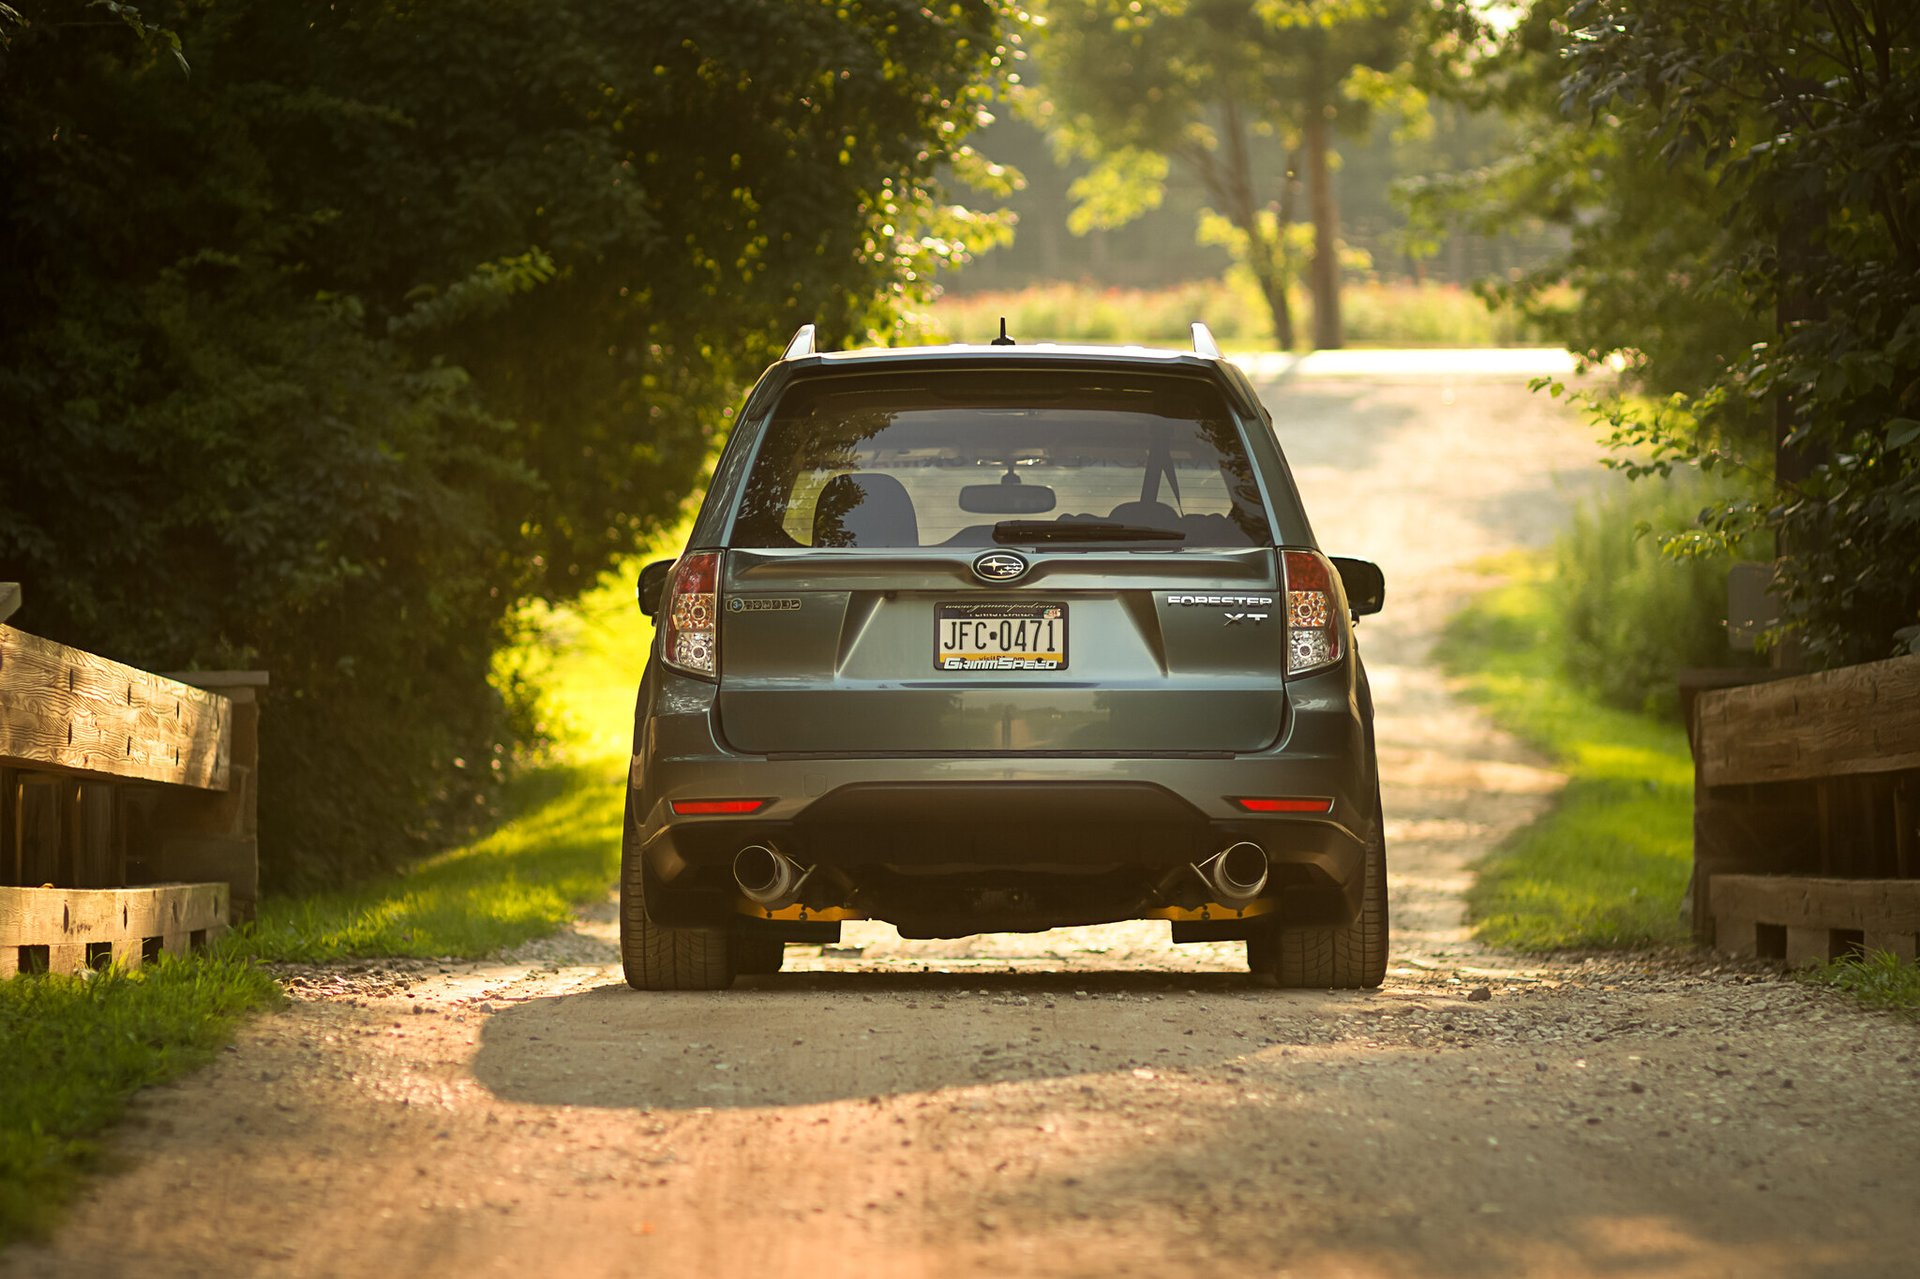 closed pa 2011 forester xt touring 67k miles modified subaru forester owners forum. Black Bedroom Furniture Sets. Home Design Ideas